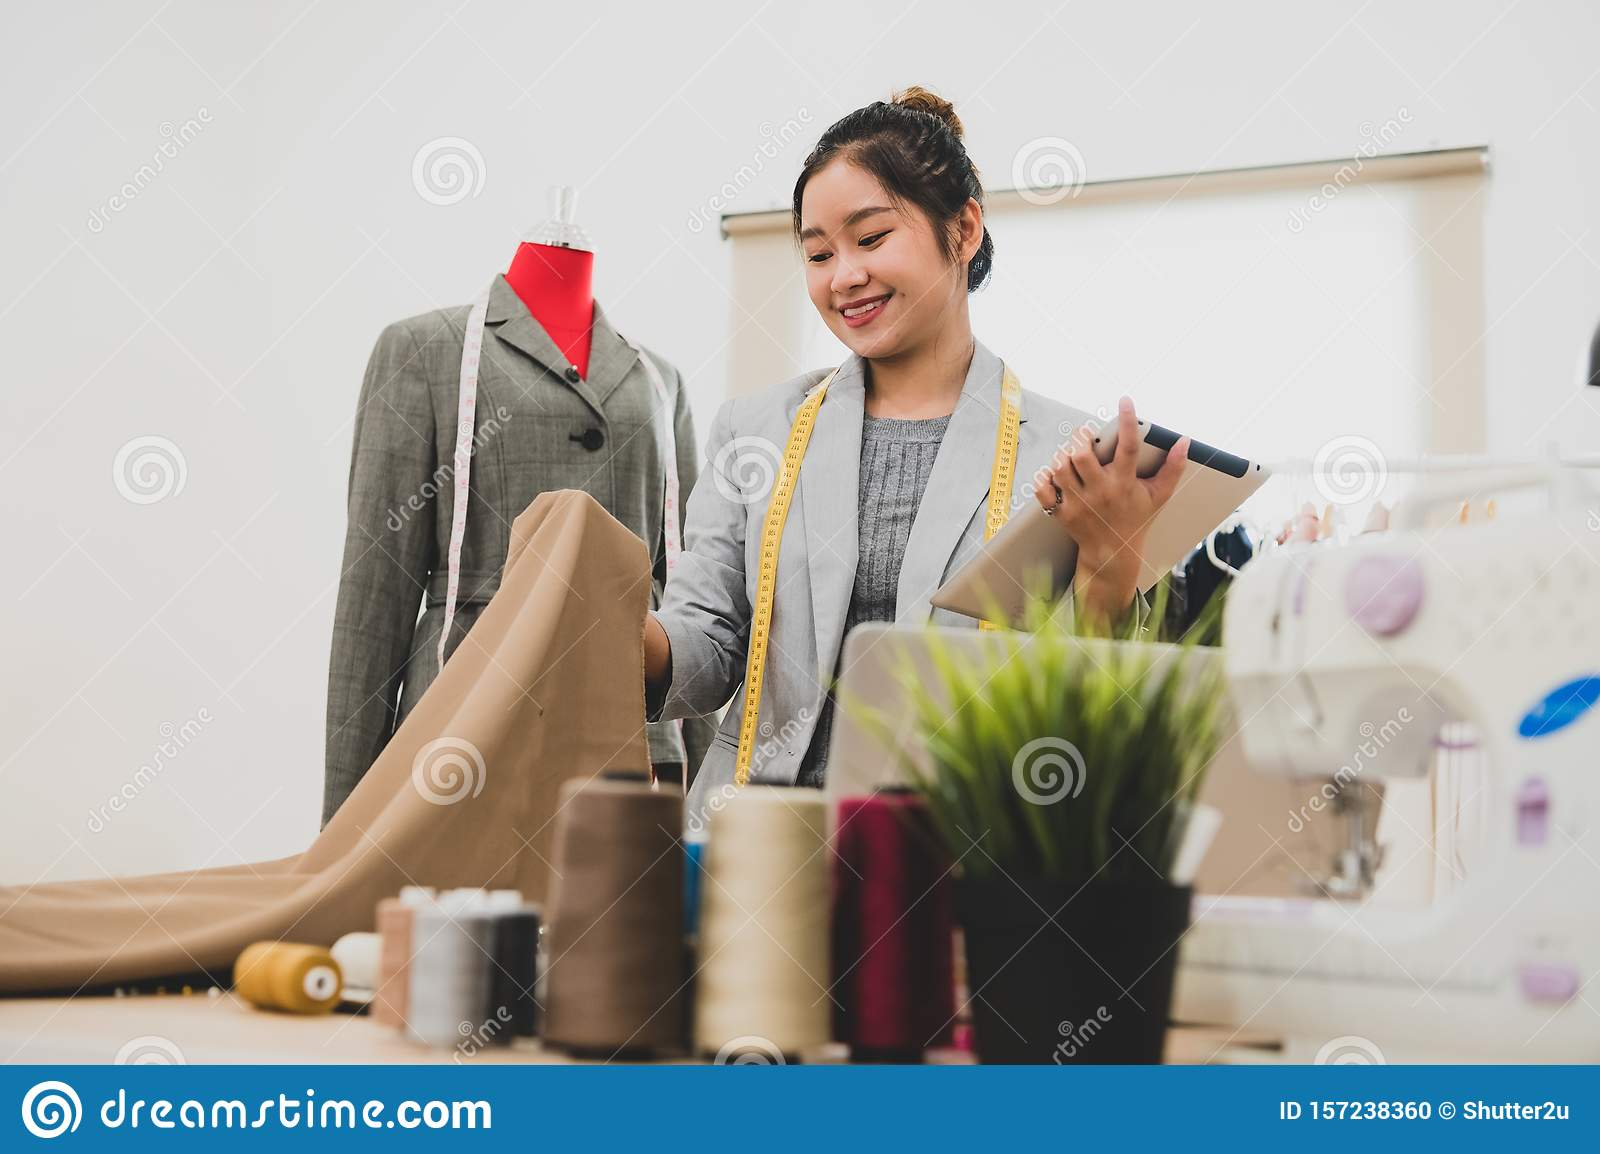 Fashion Designer Stylist In Business Owner Workshop With Tablet And Customer Contact List Tailor And Sew Concept Portrait Of Stock Photo Image Of Caucasian Fashion 157238360